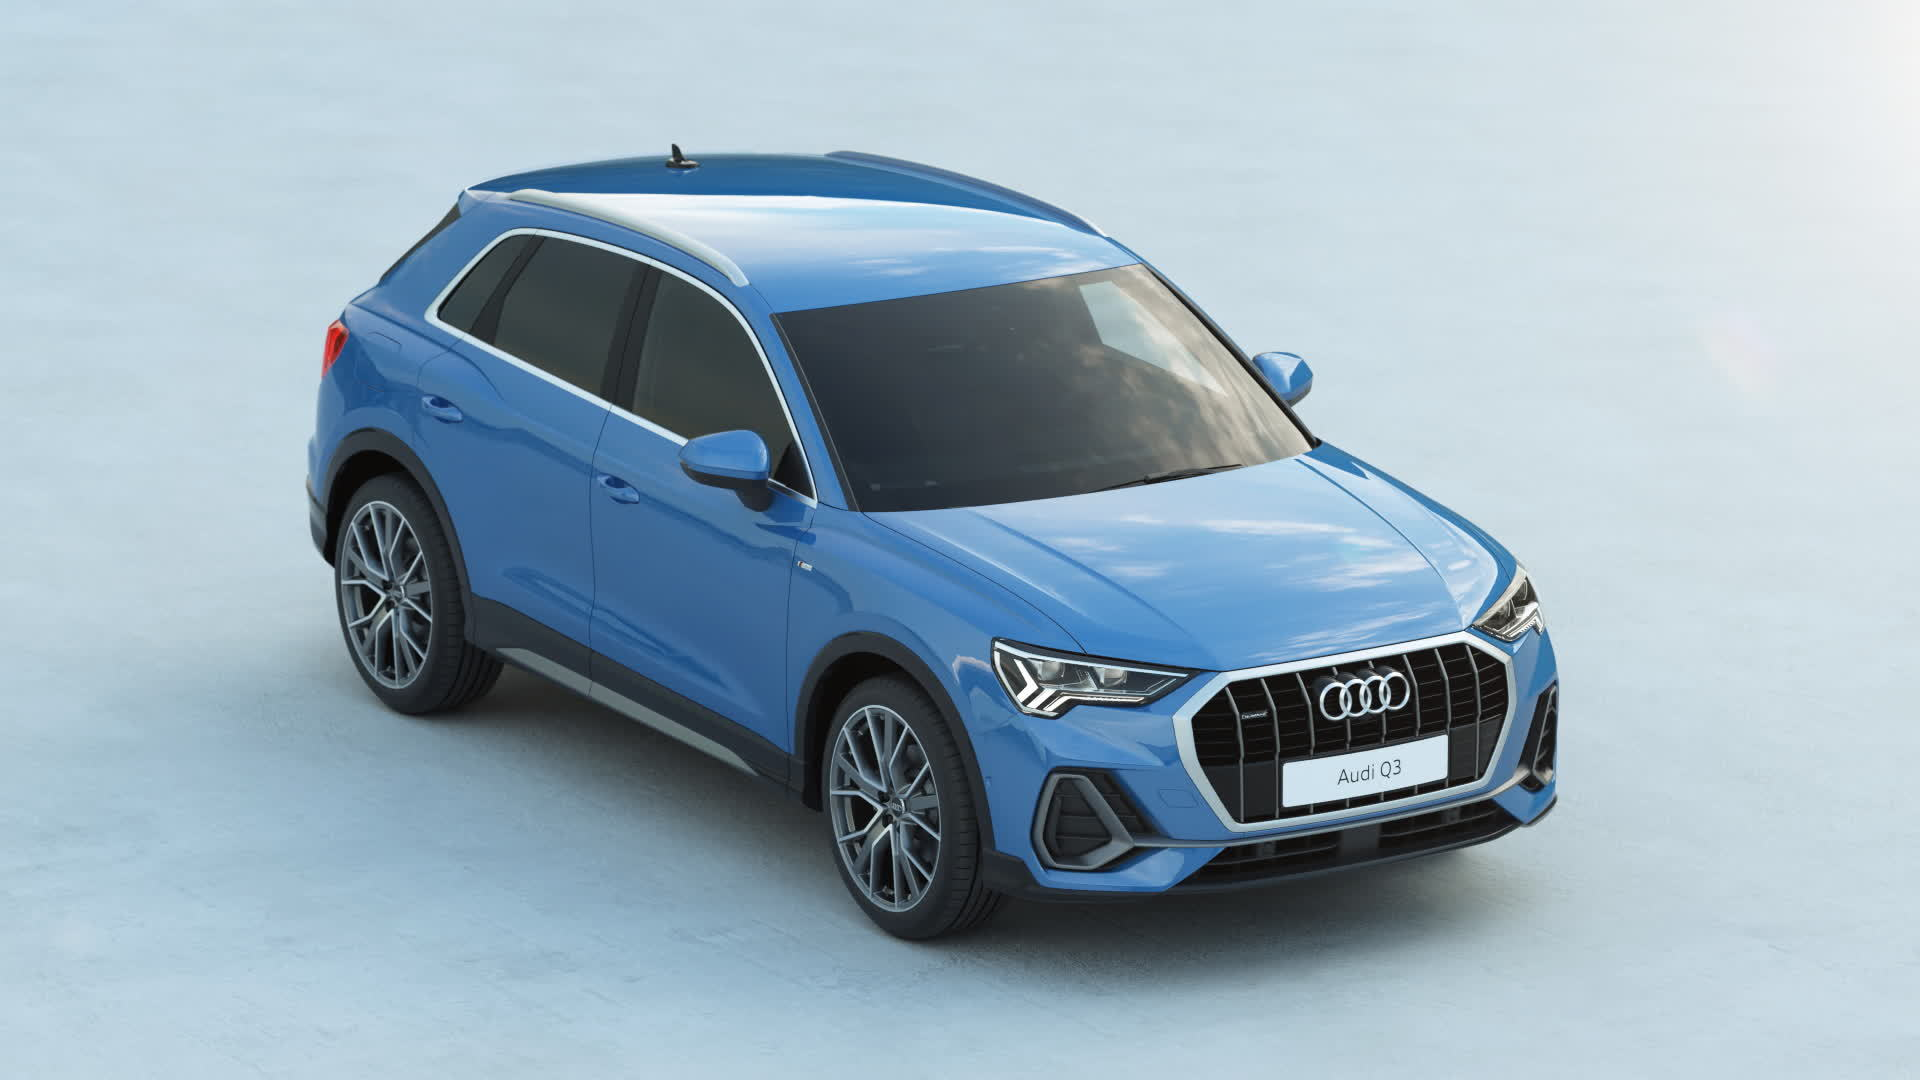 Audi Q3 Exterieurdesign (Animation)